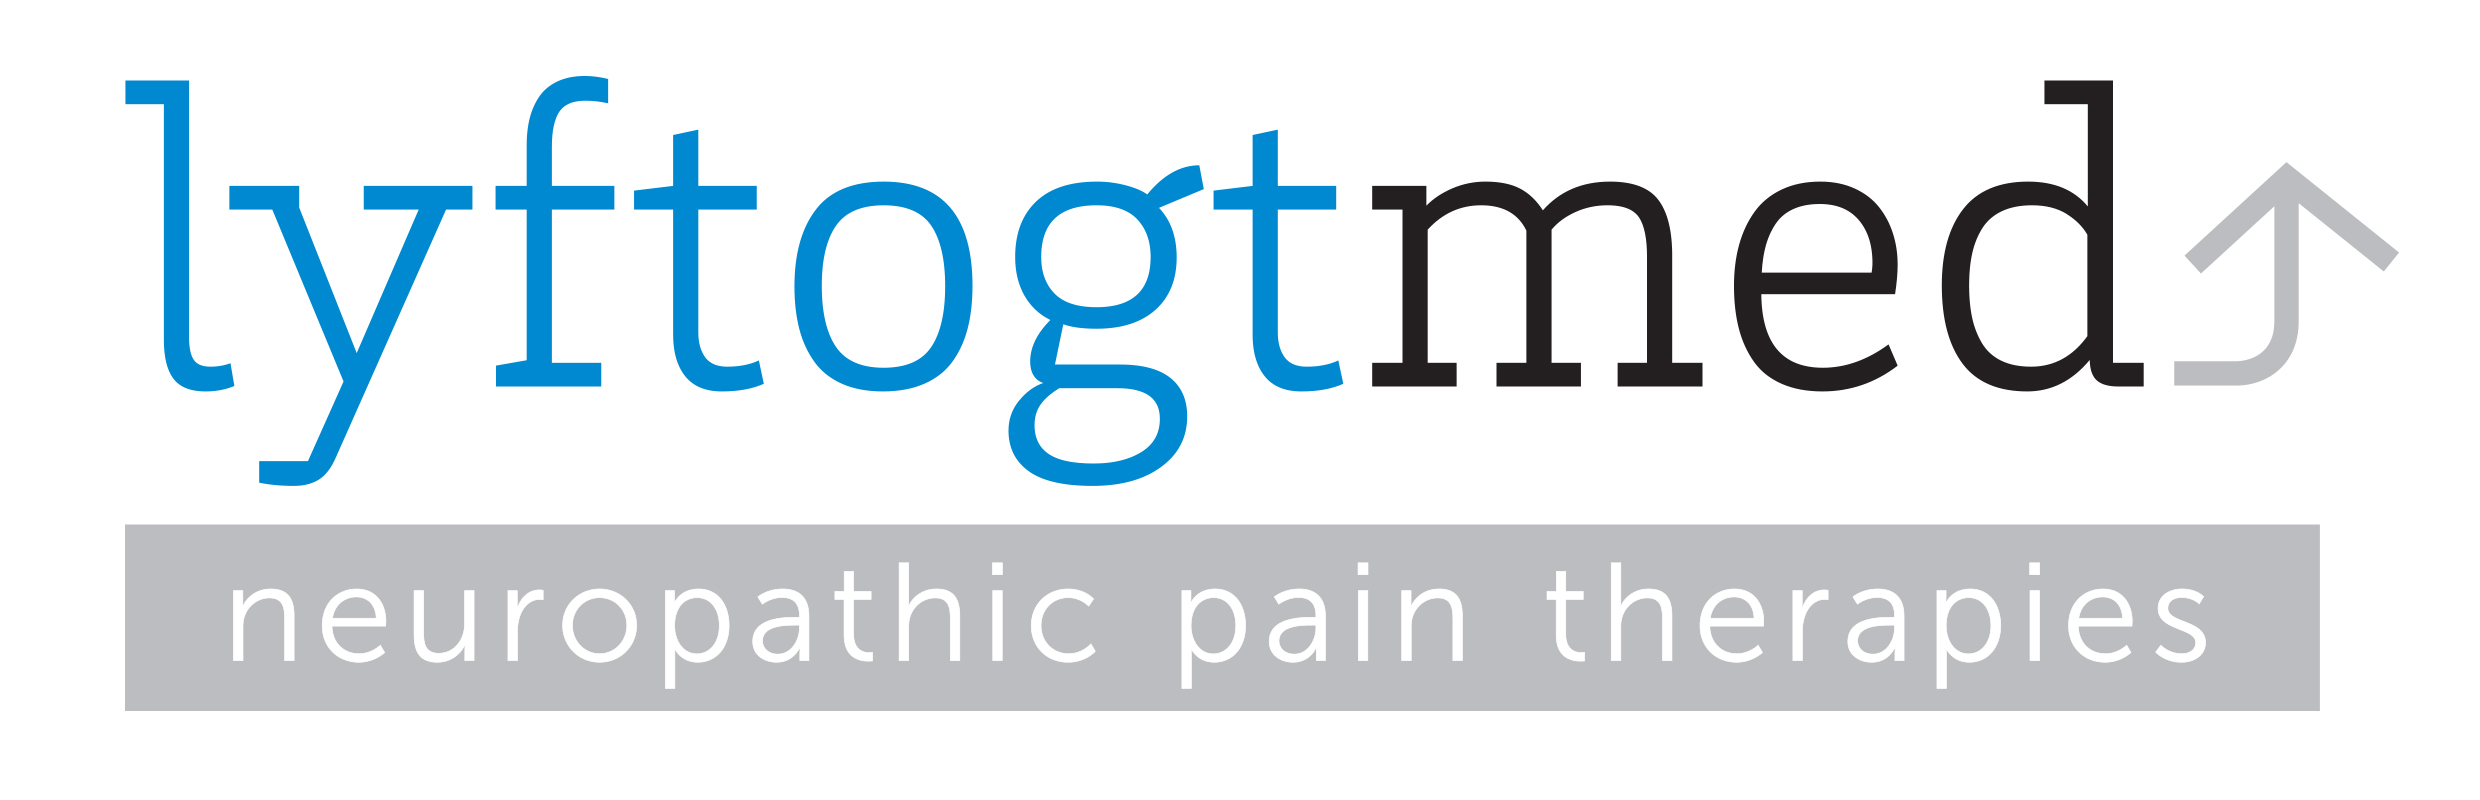 Lyftogt Perineural Injection Treatment Introductory Workshop, Squamish, BC, Canada (venue to be advised) logo